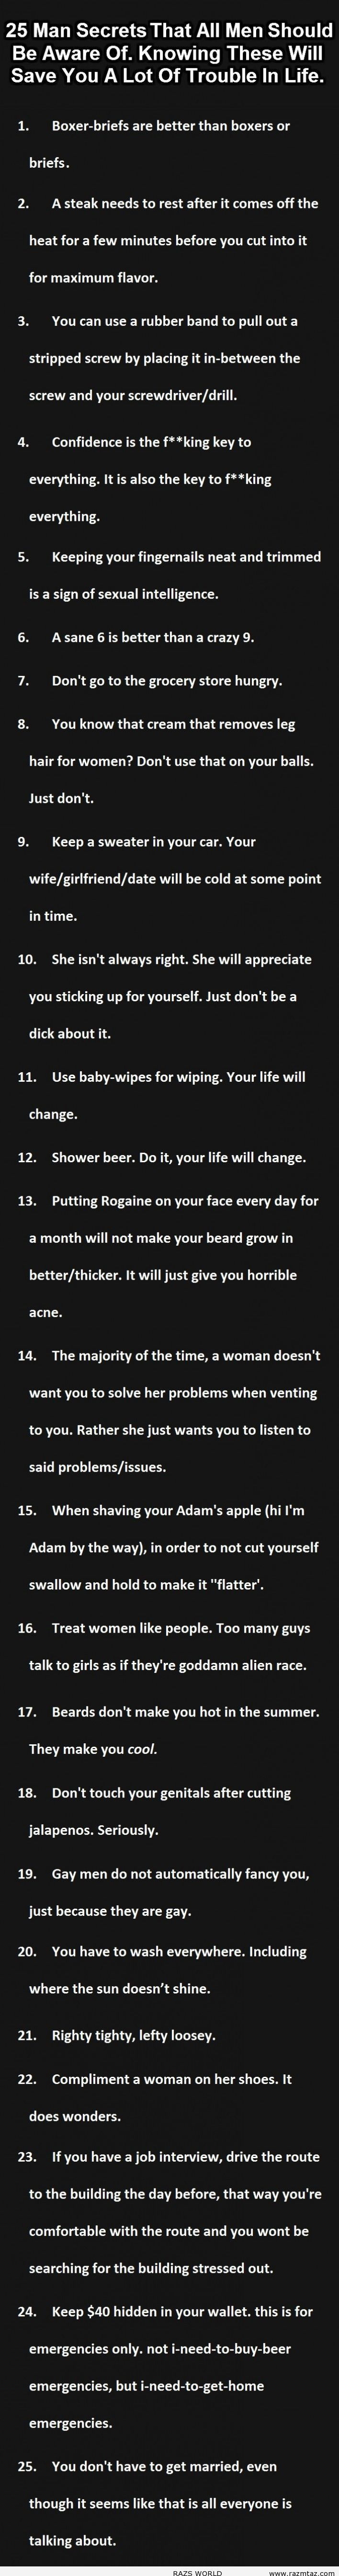 25 Man Secrets That All Men Should Be Aware Of - Mostly common sense, a few very obvious and several very handy   #lifehack #manhack #mansecrets